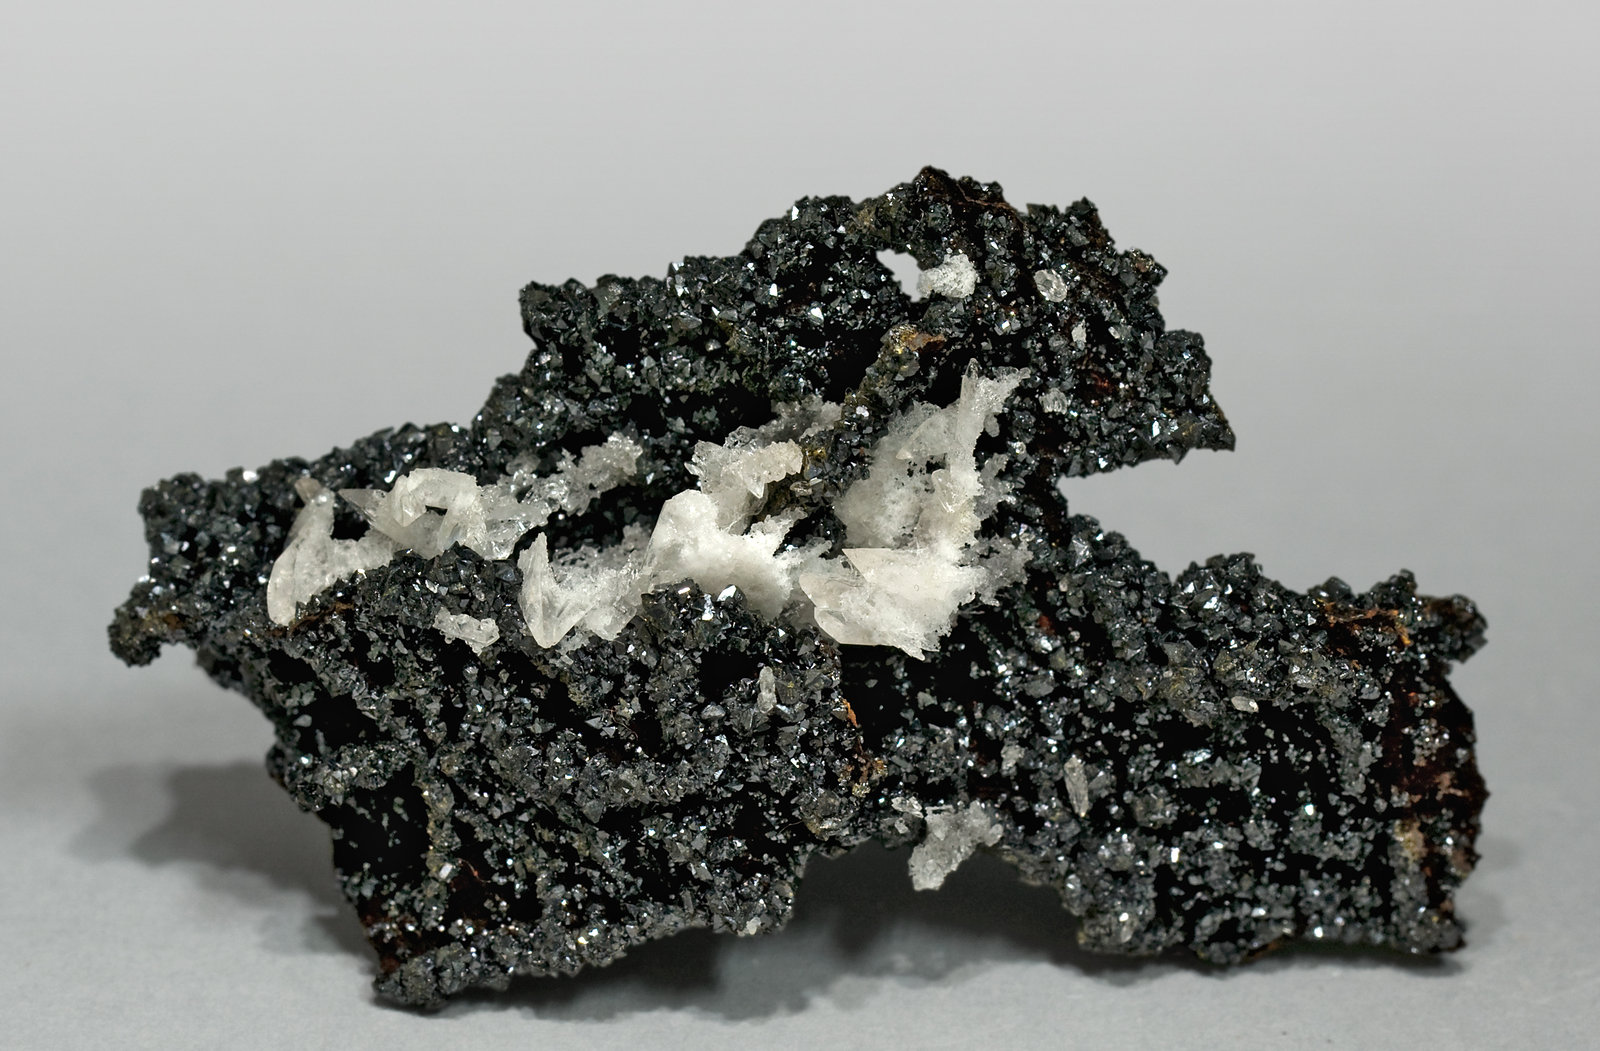 specimens/s_imagesT4/Descloizite-NA76T4f.jpg